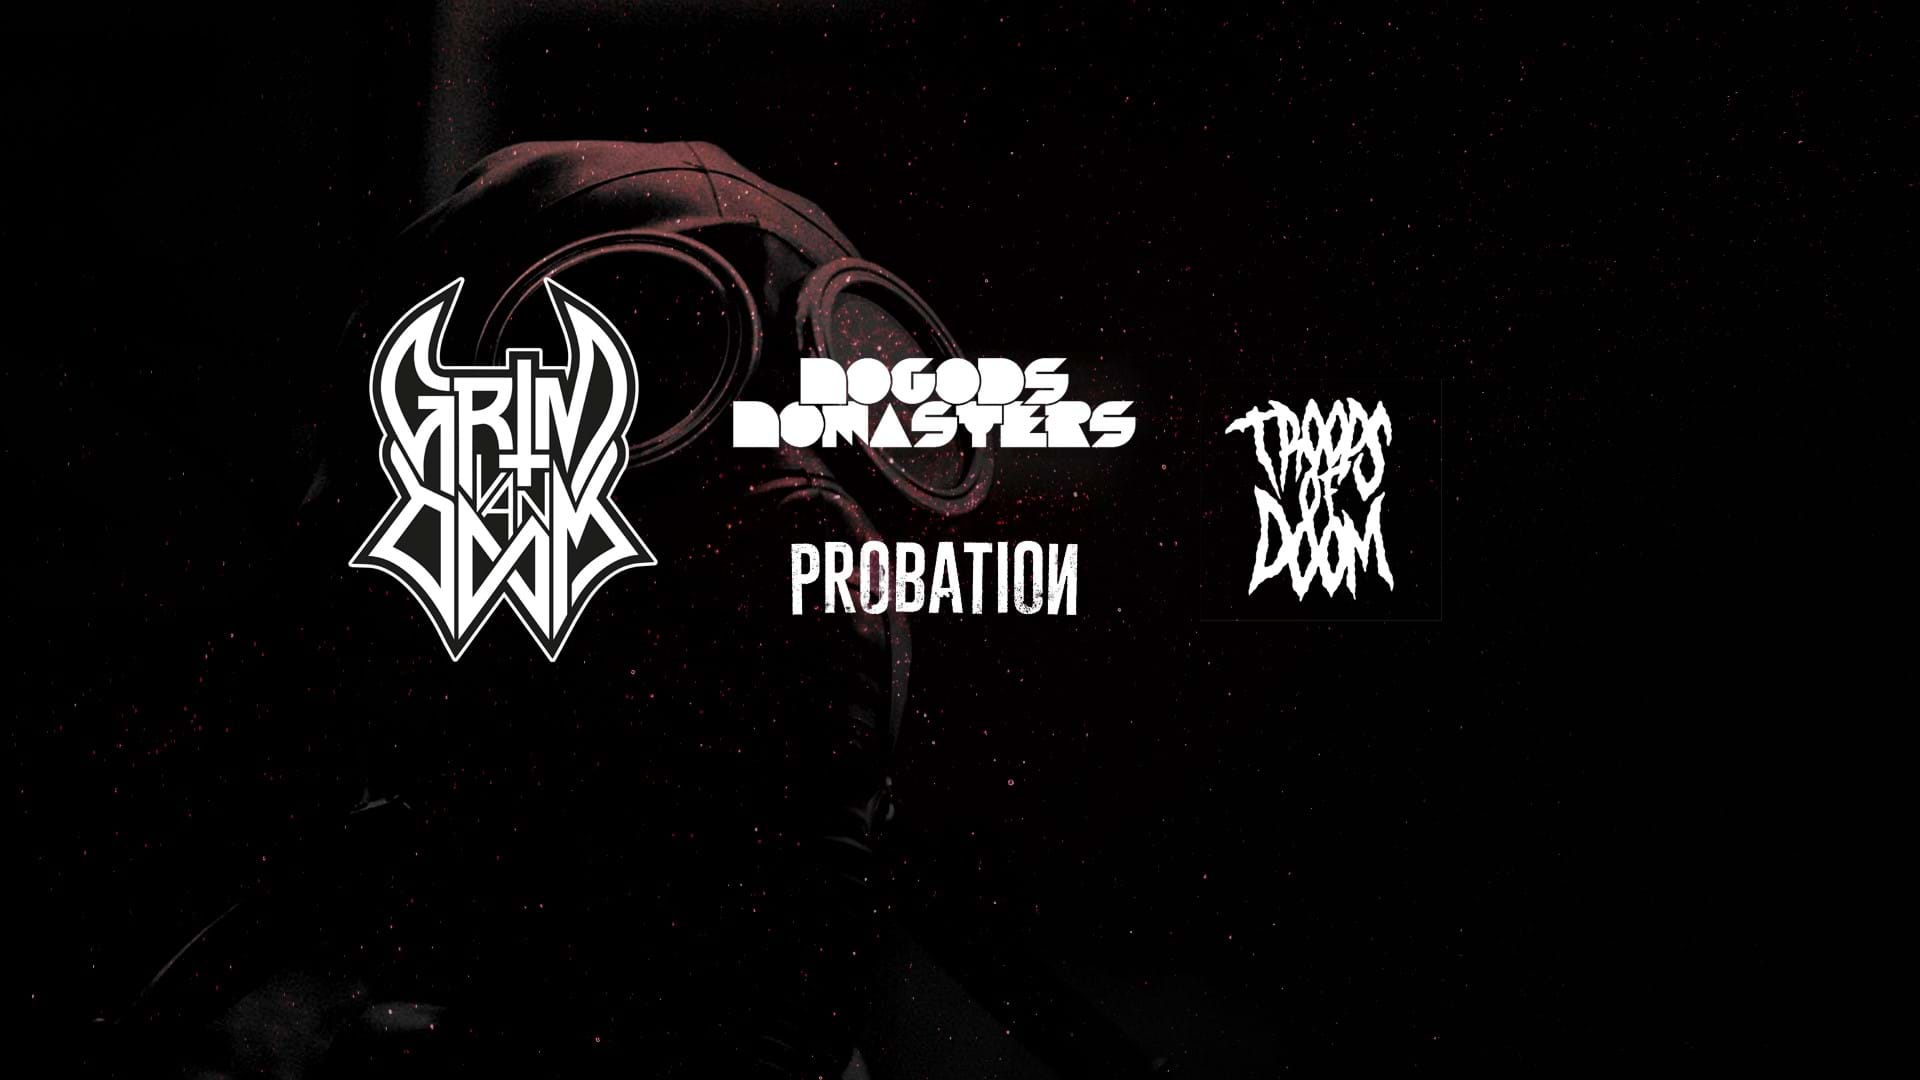 Grim van Doom + No Gods No Masters + Troops of Doom + Probation